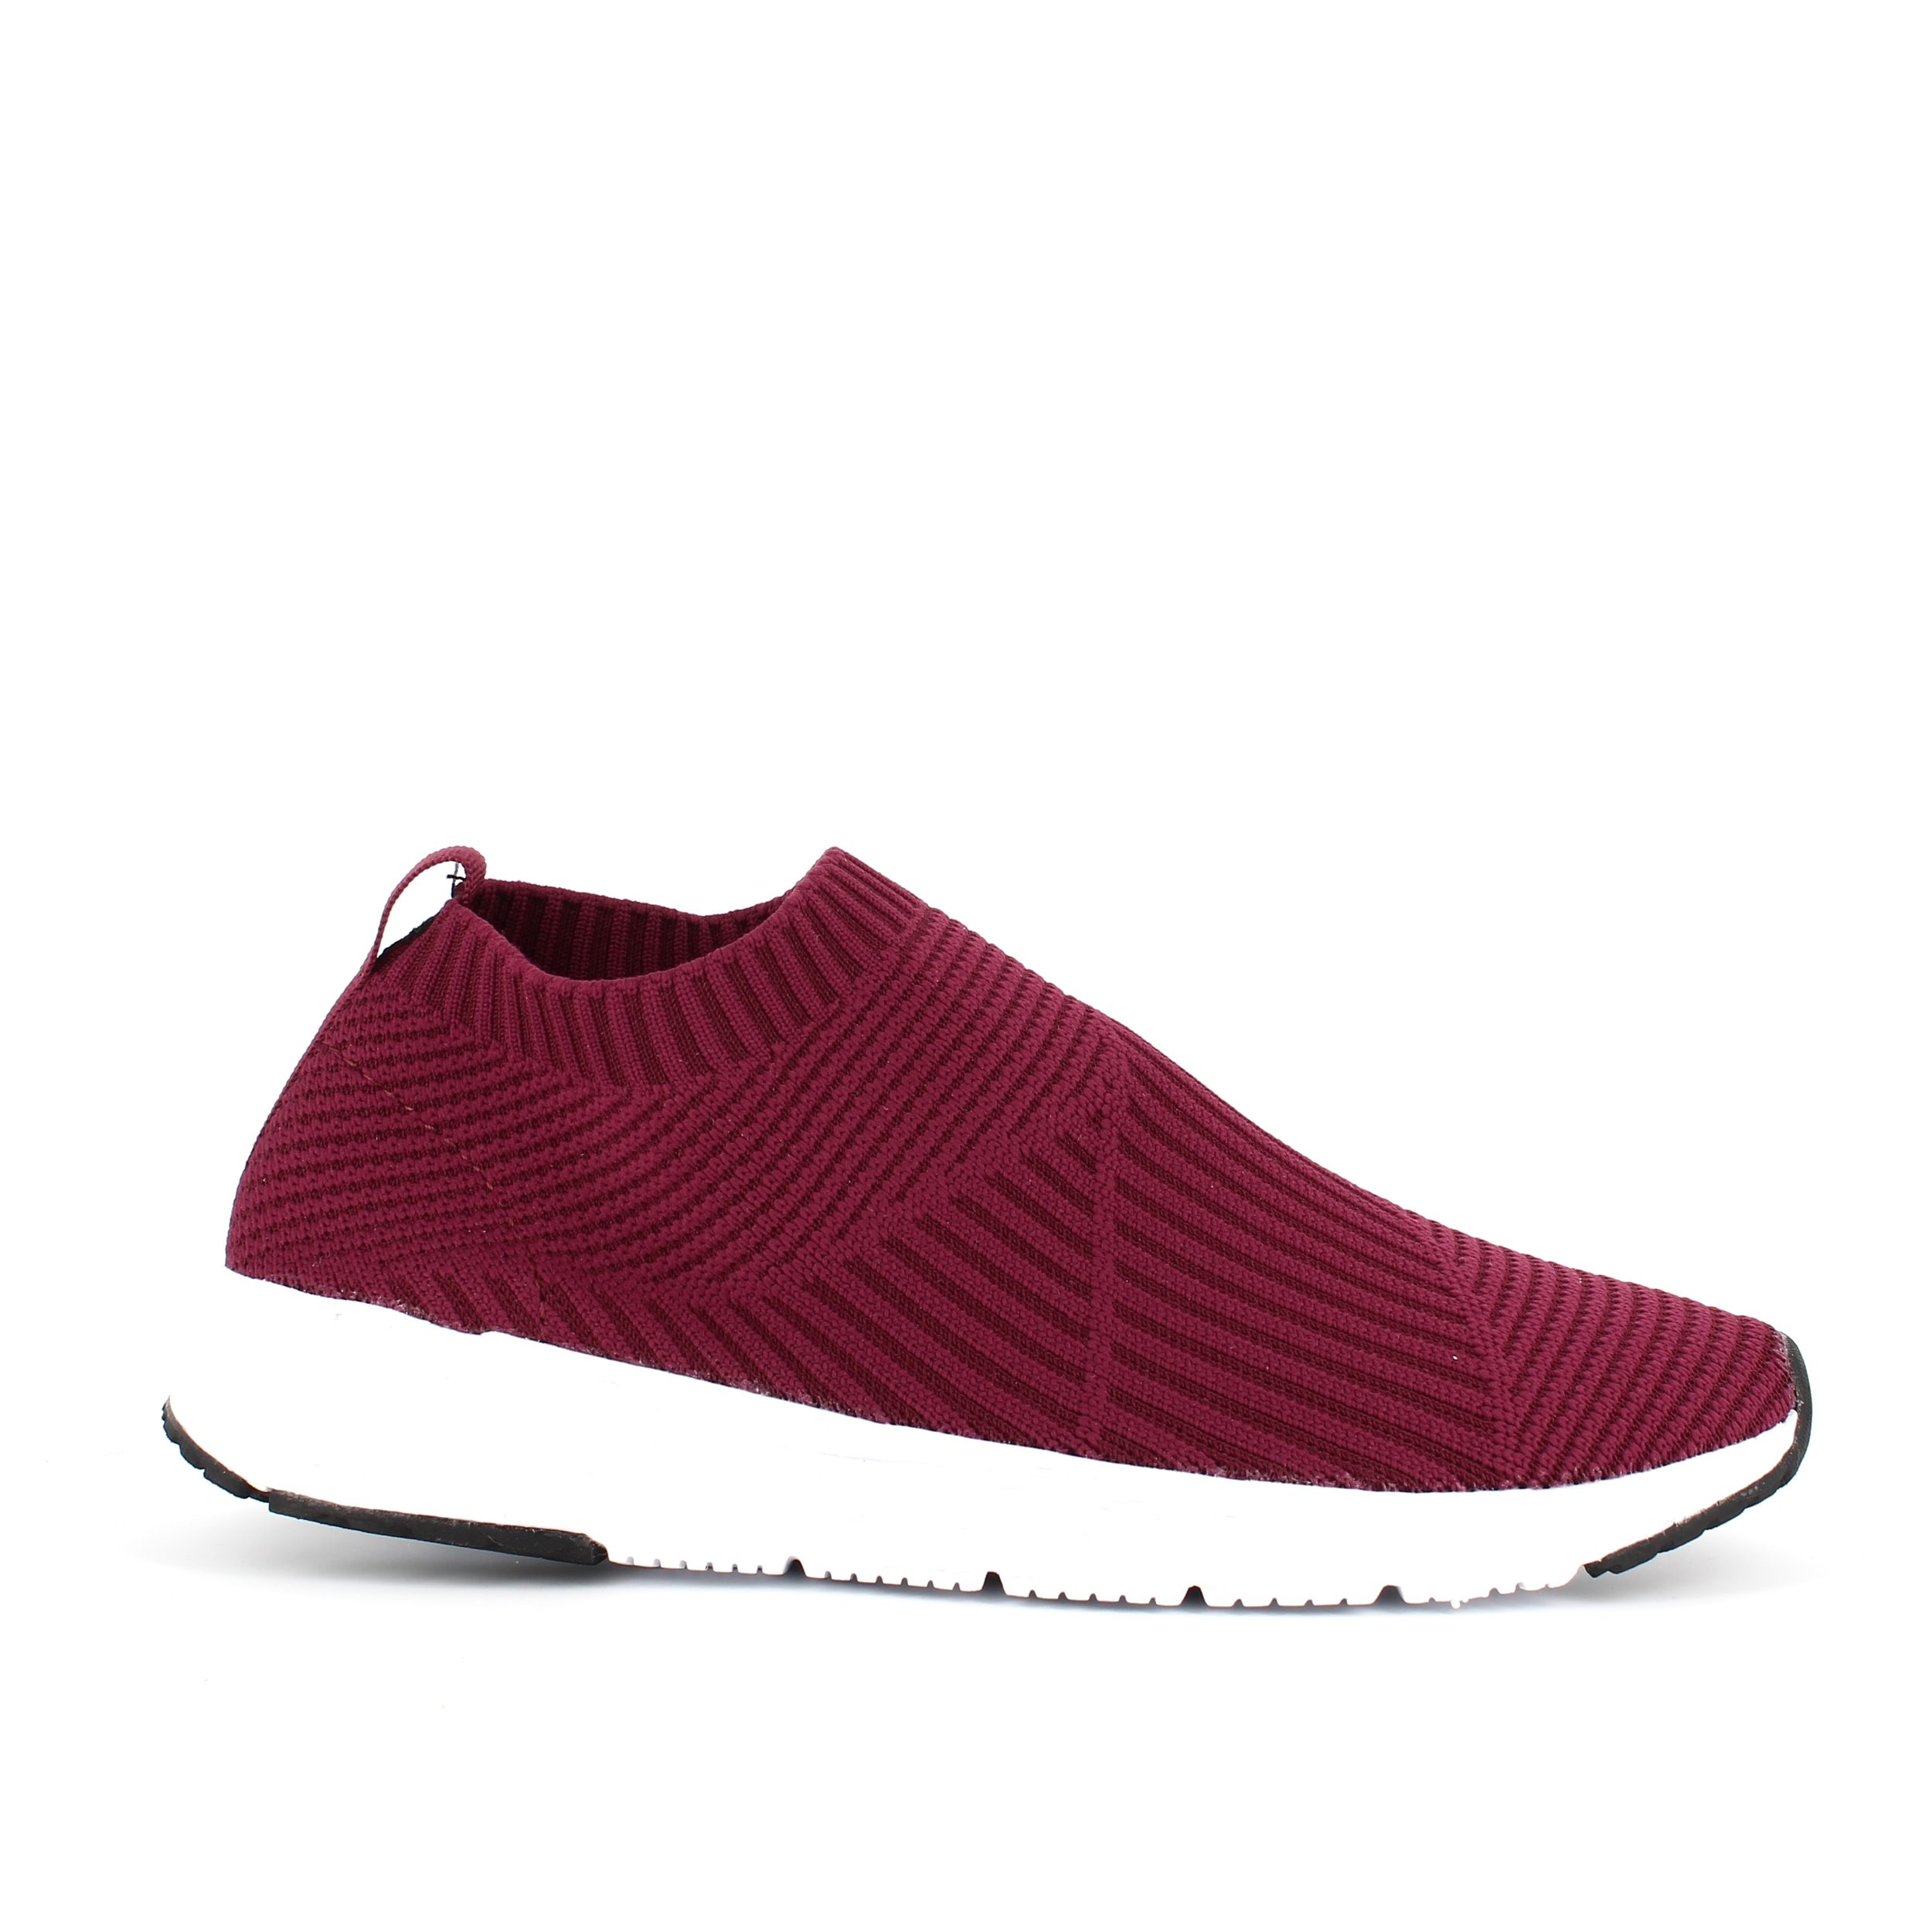 Image of   Bordeaux strikket slip in sneakers - god til smalle fødder - 40